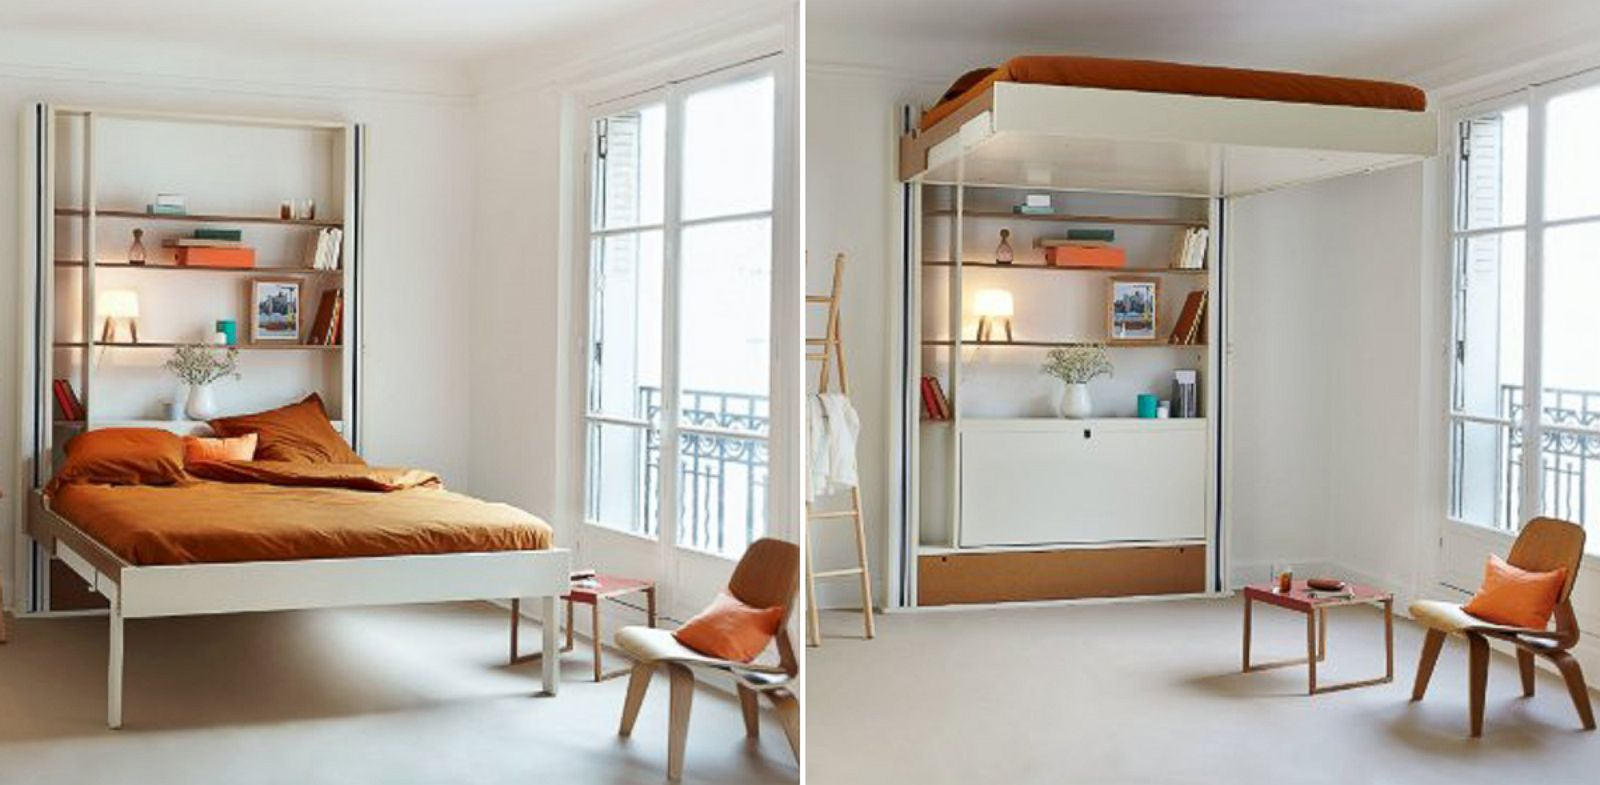 PHOTO: Espacce Loggia beds retract to the ceiling when not in use.